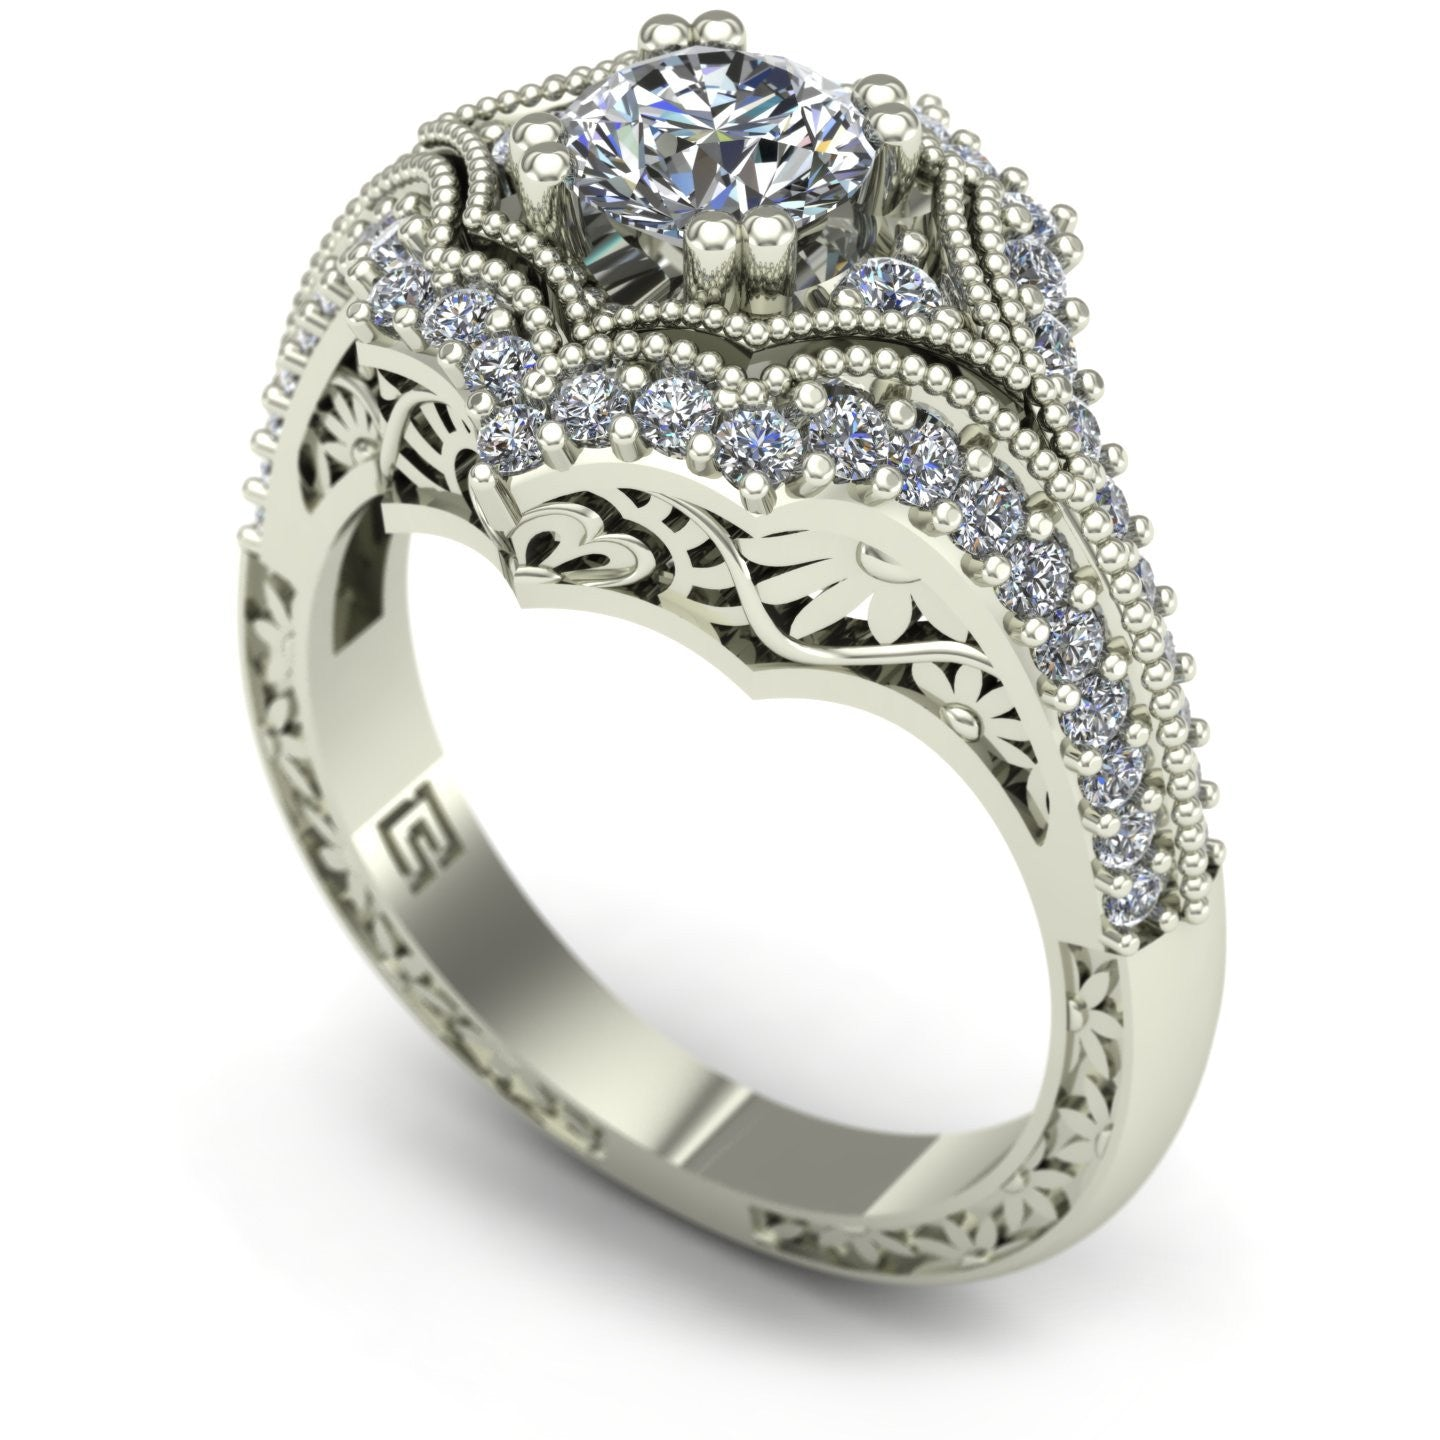 Diamond engagement ring with floral carving in 14k white gold